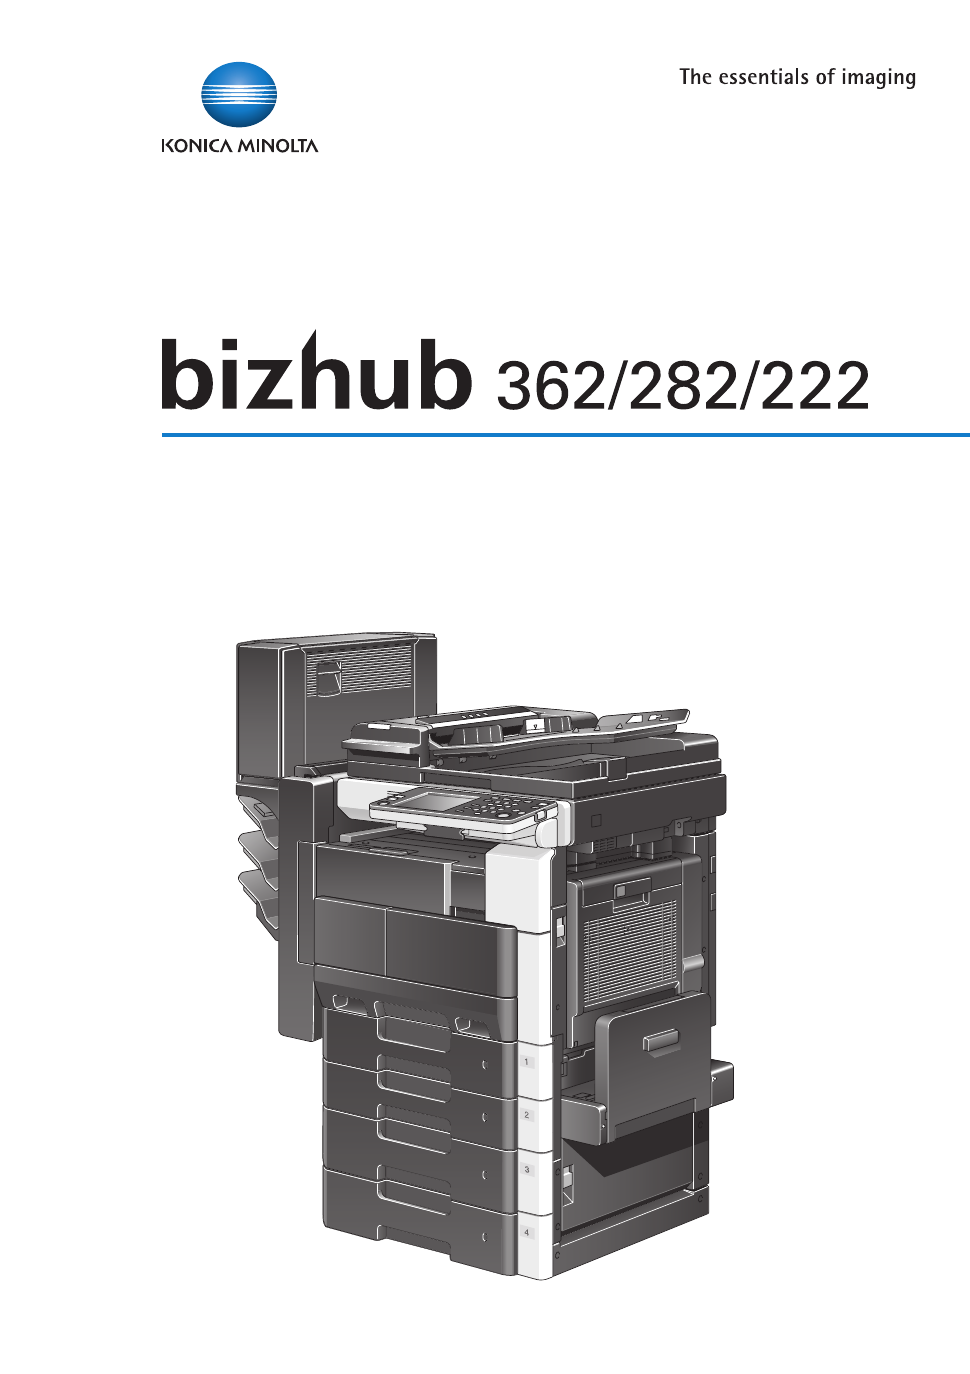 Konica Minolta Bizhub 222 User's Manual - Free PDF Download